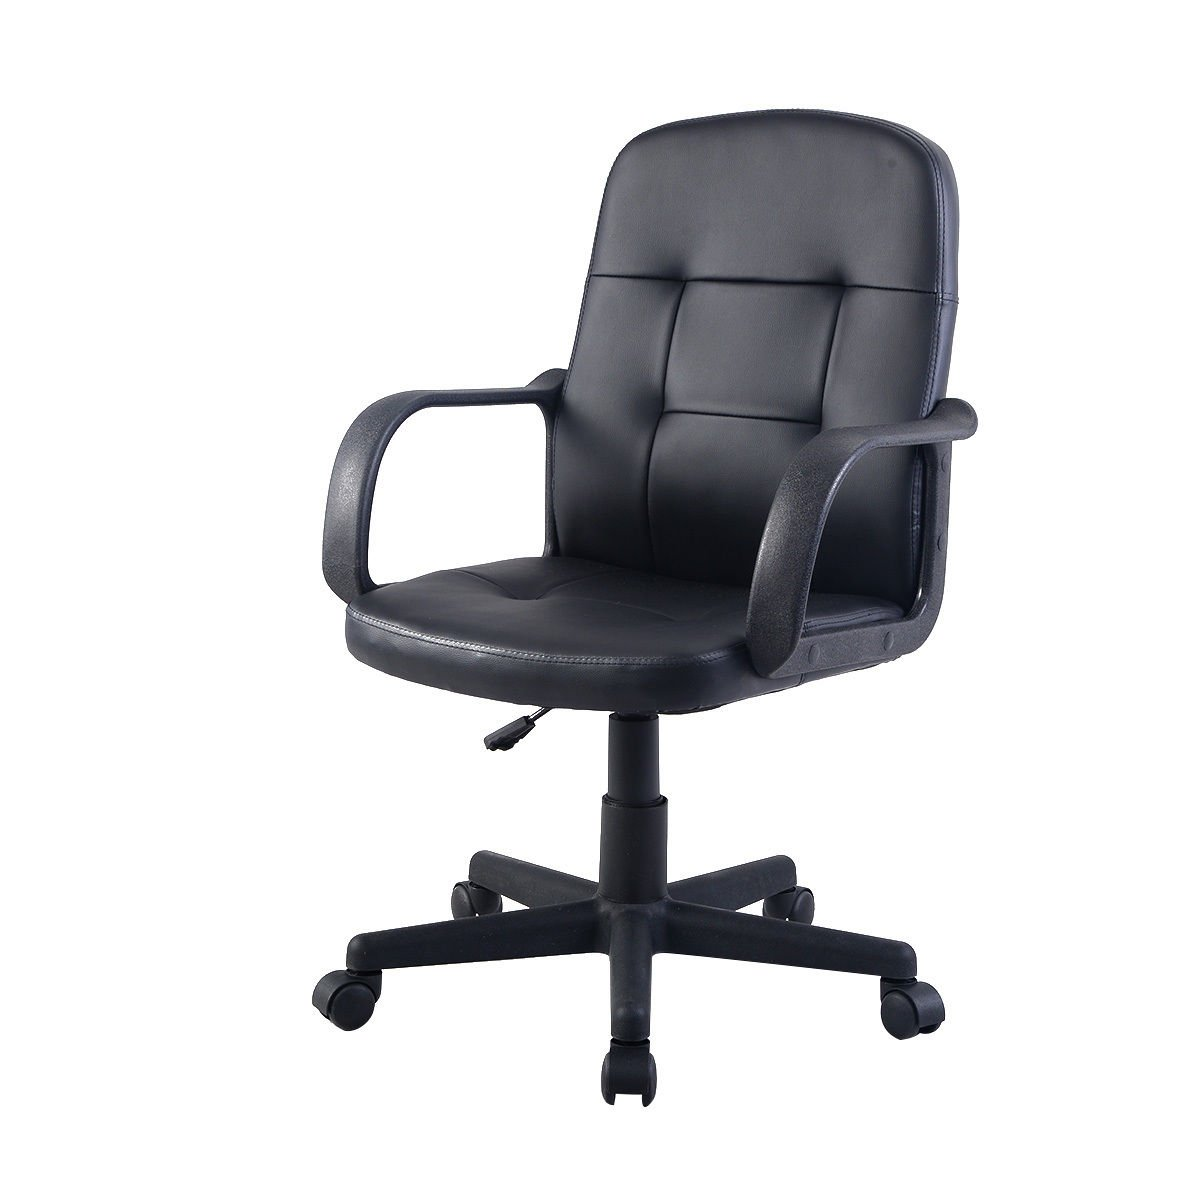 Fine Super Buy New Pu Leather Ergonomic Midback Executive Computer Desk Task Office Chair Black Machost Co Dining Chair Design Ideas Machostcouk